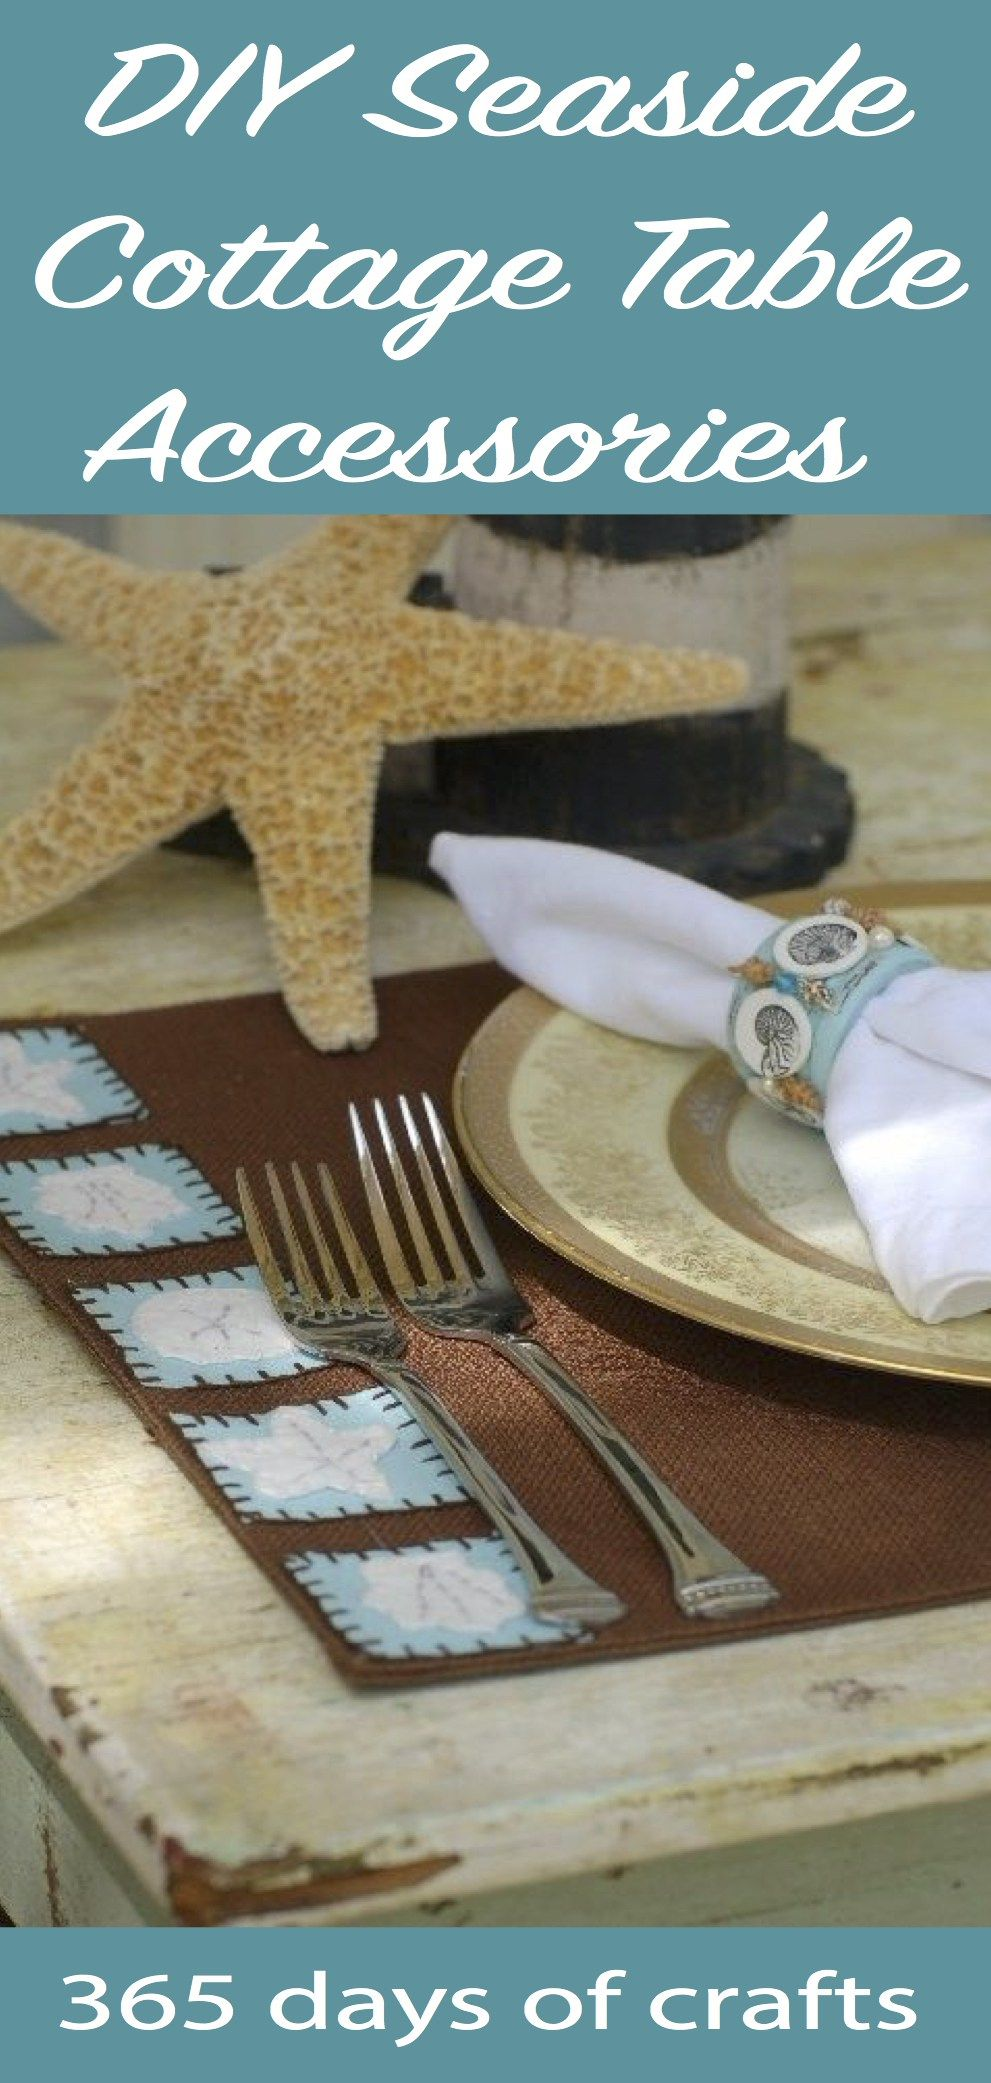 DIY seaside cottage placemats and napkin rings